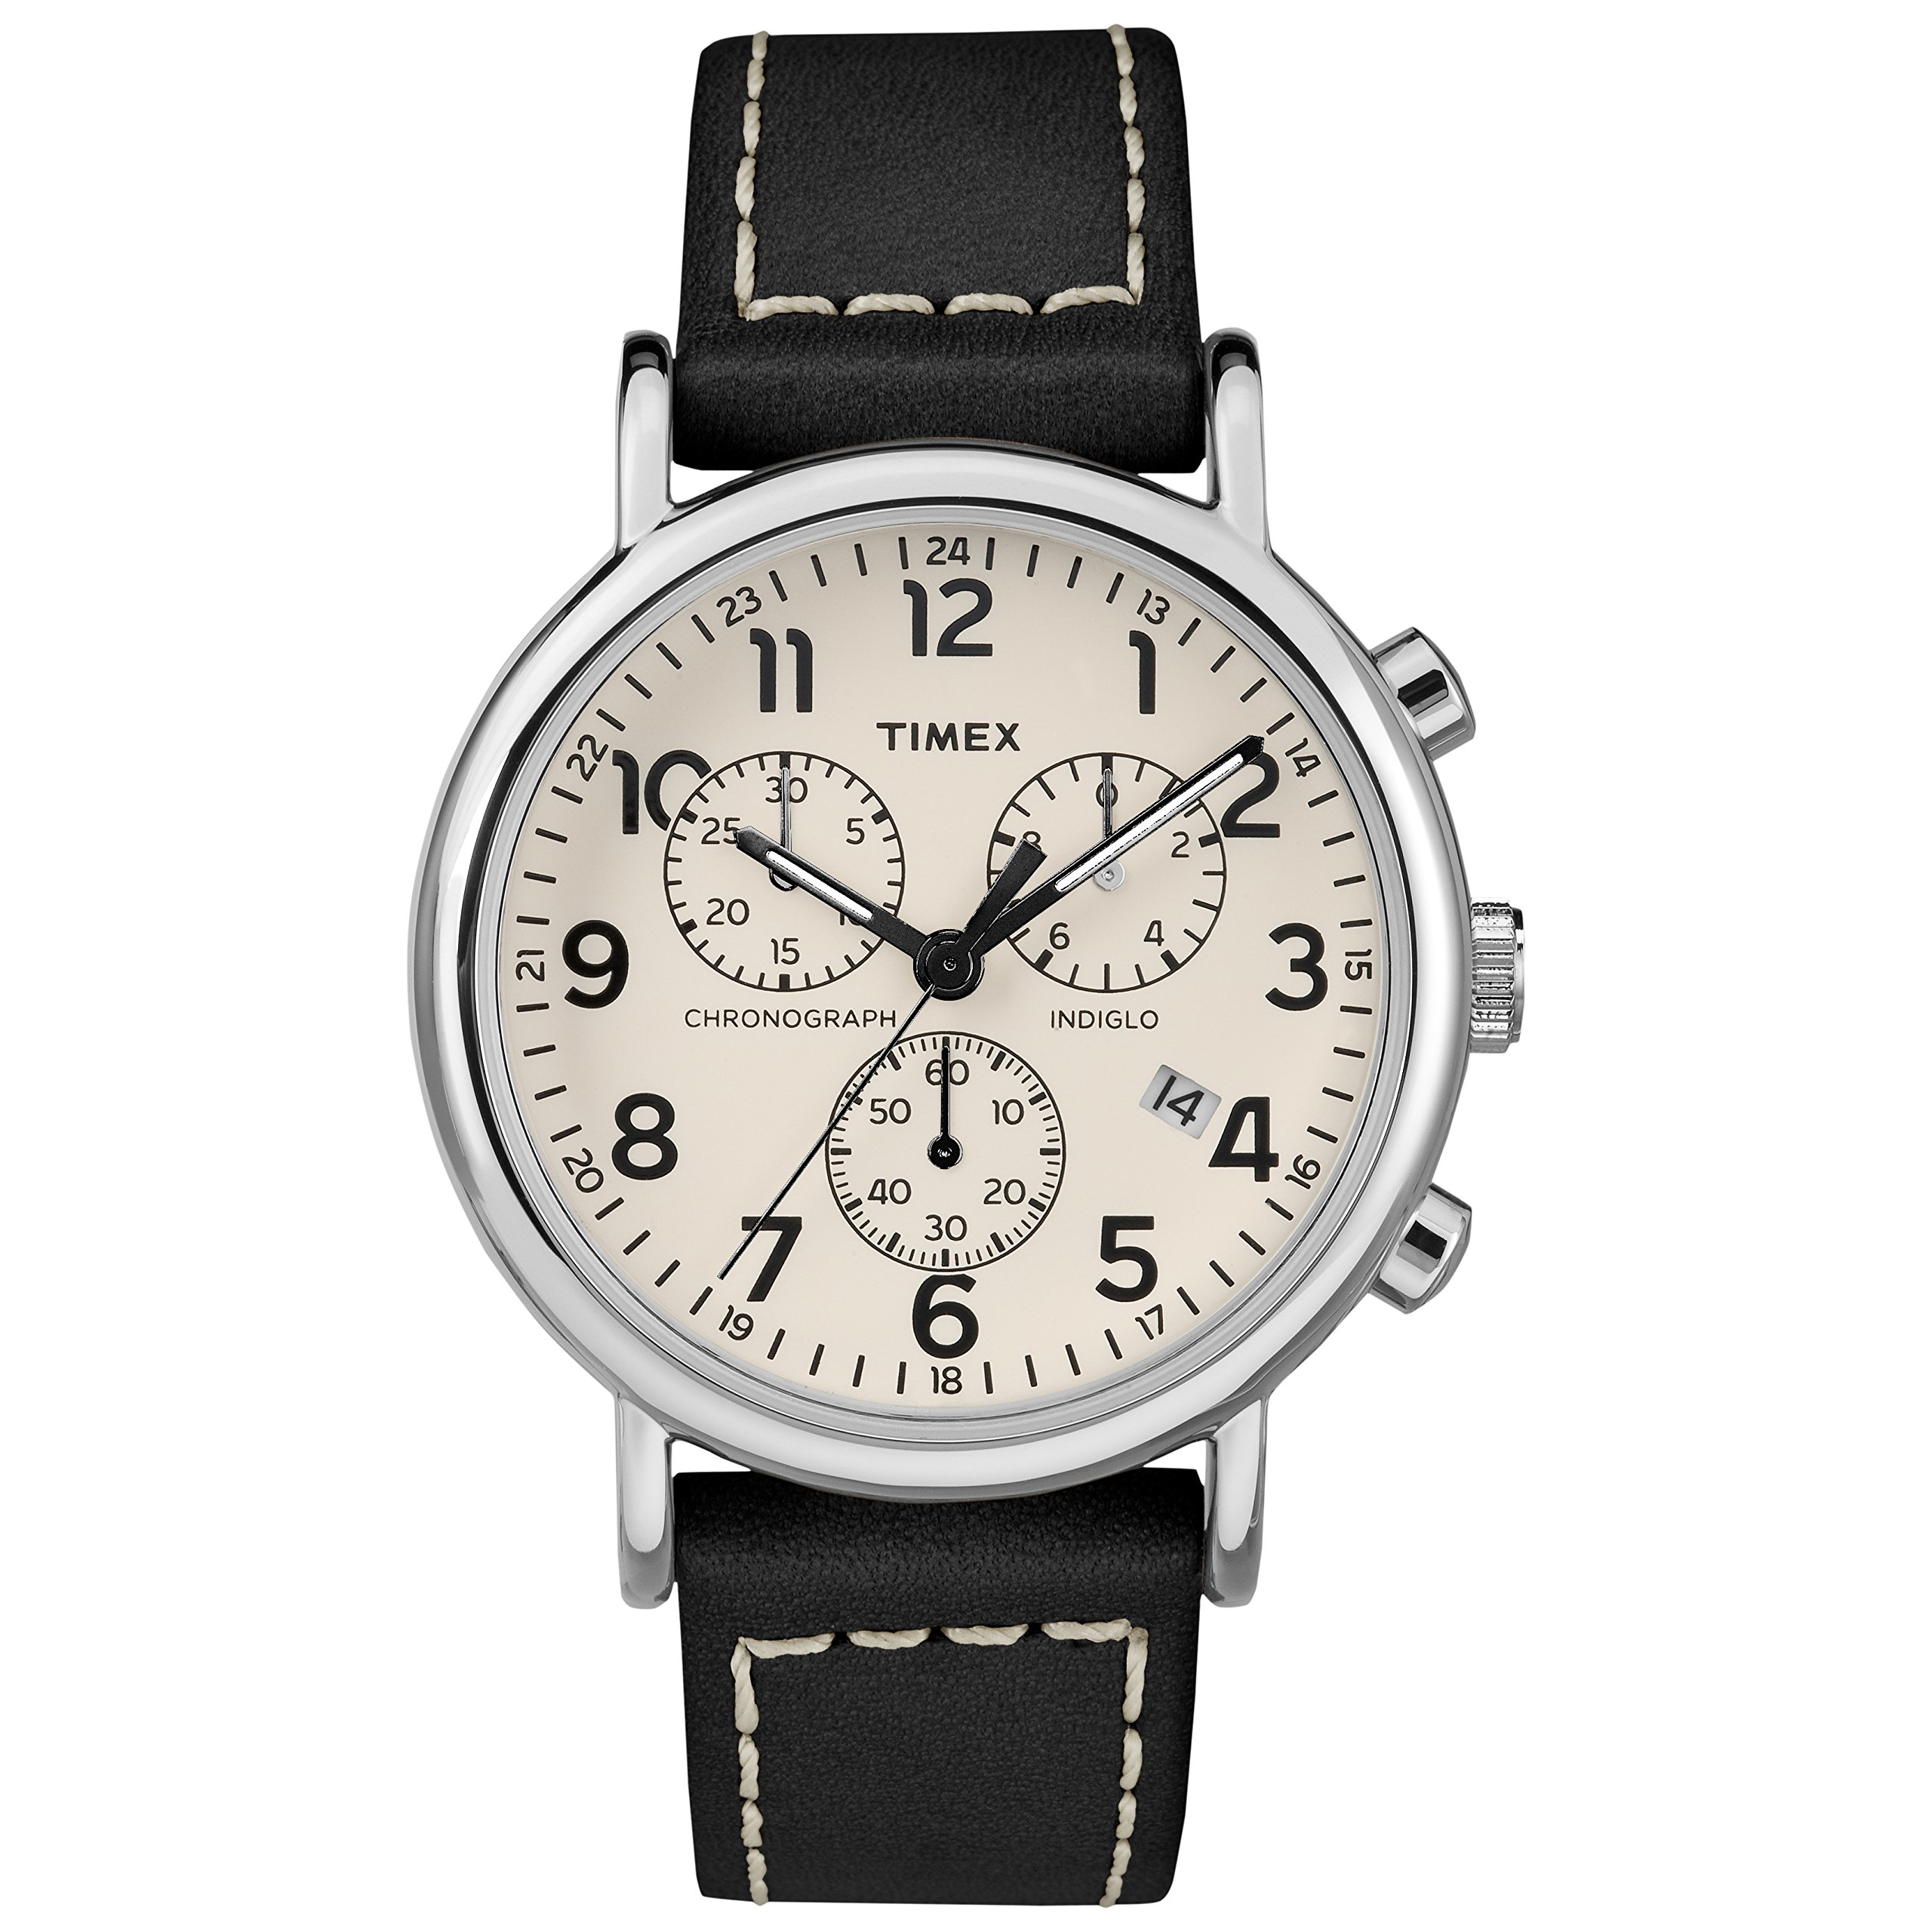 Timex Men's TW2R42800 Weekender Chrono Black/Cream Leather Strap Watch by Timex